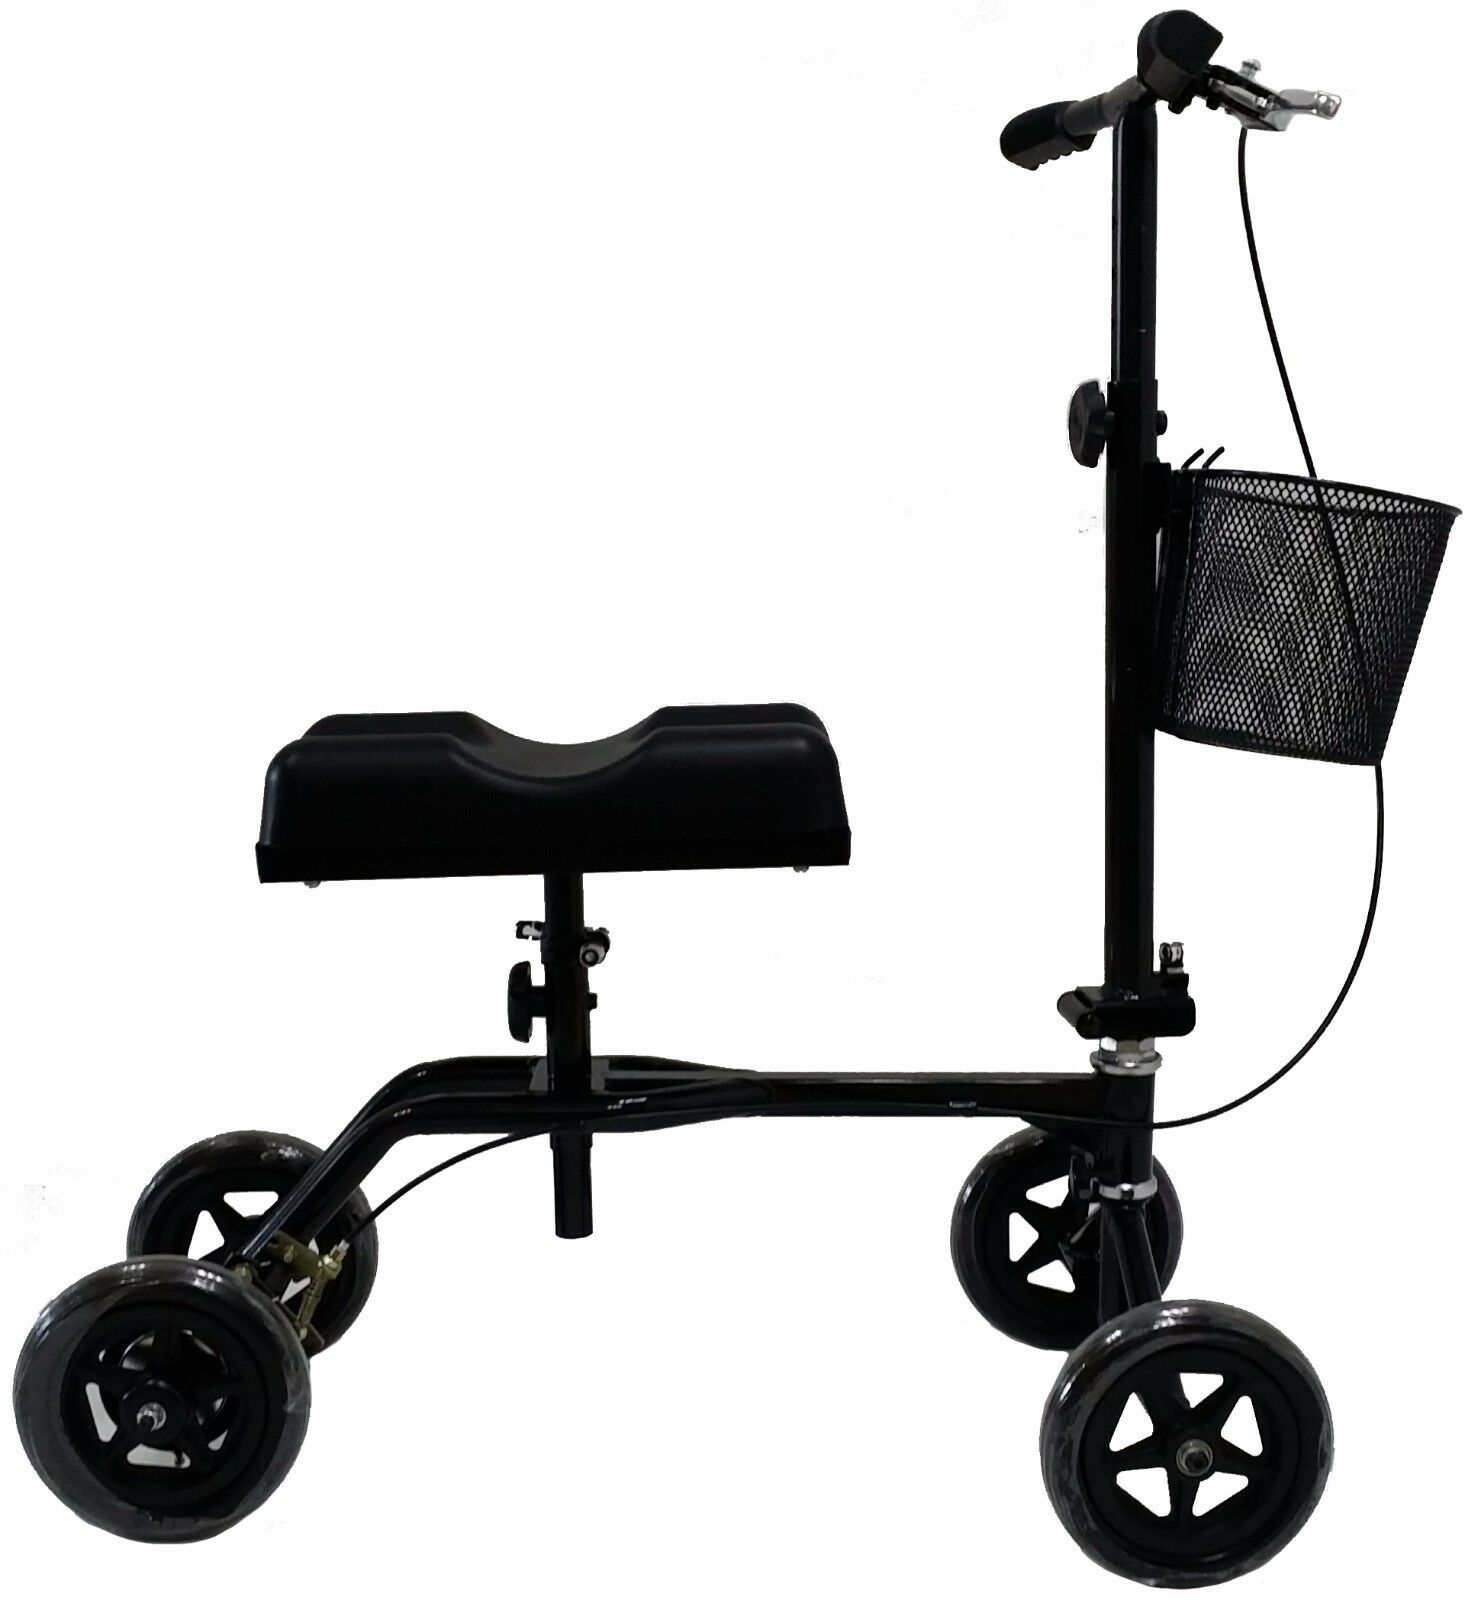 New Black Steerable Foldable Knee Walker Scooter Turning Bra